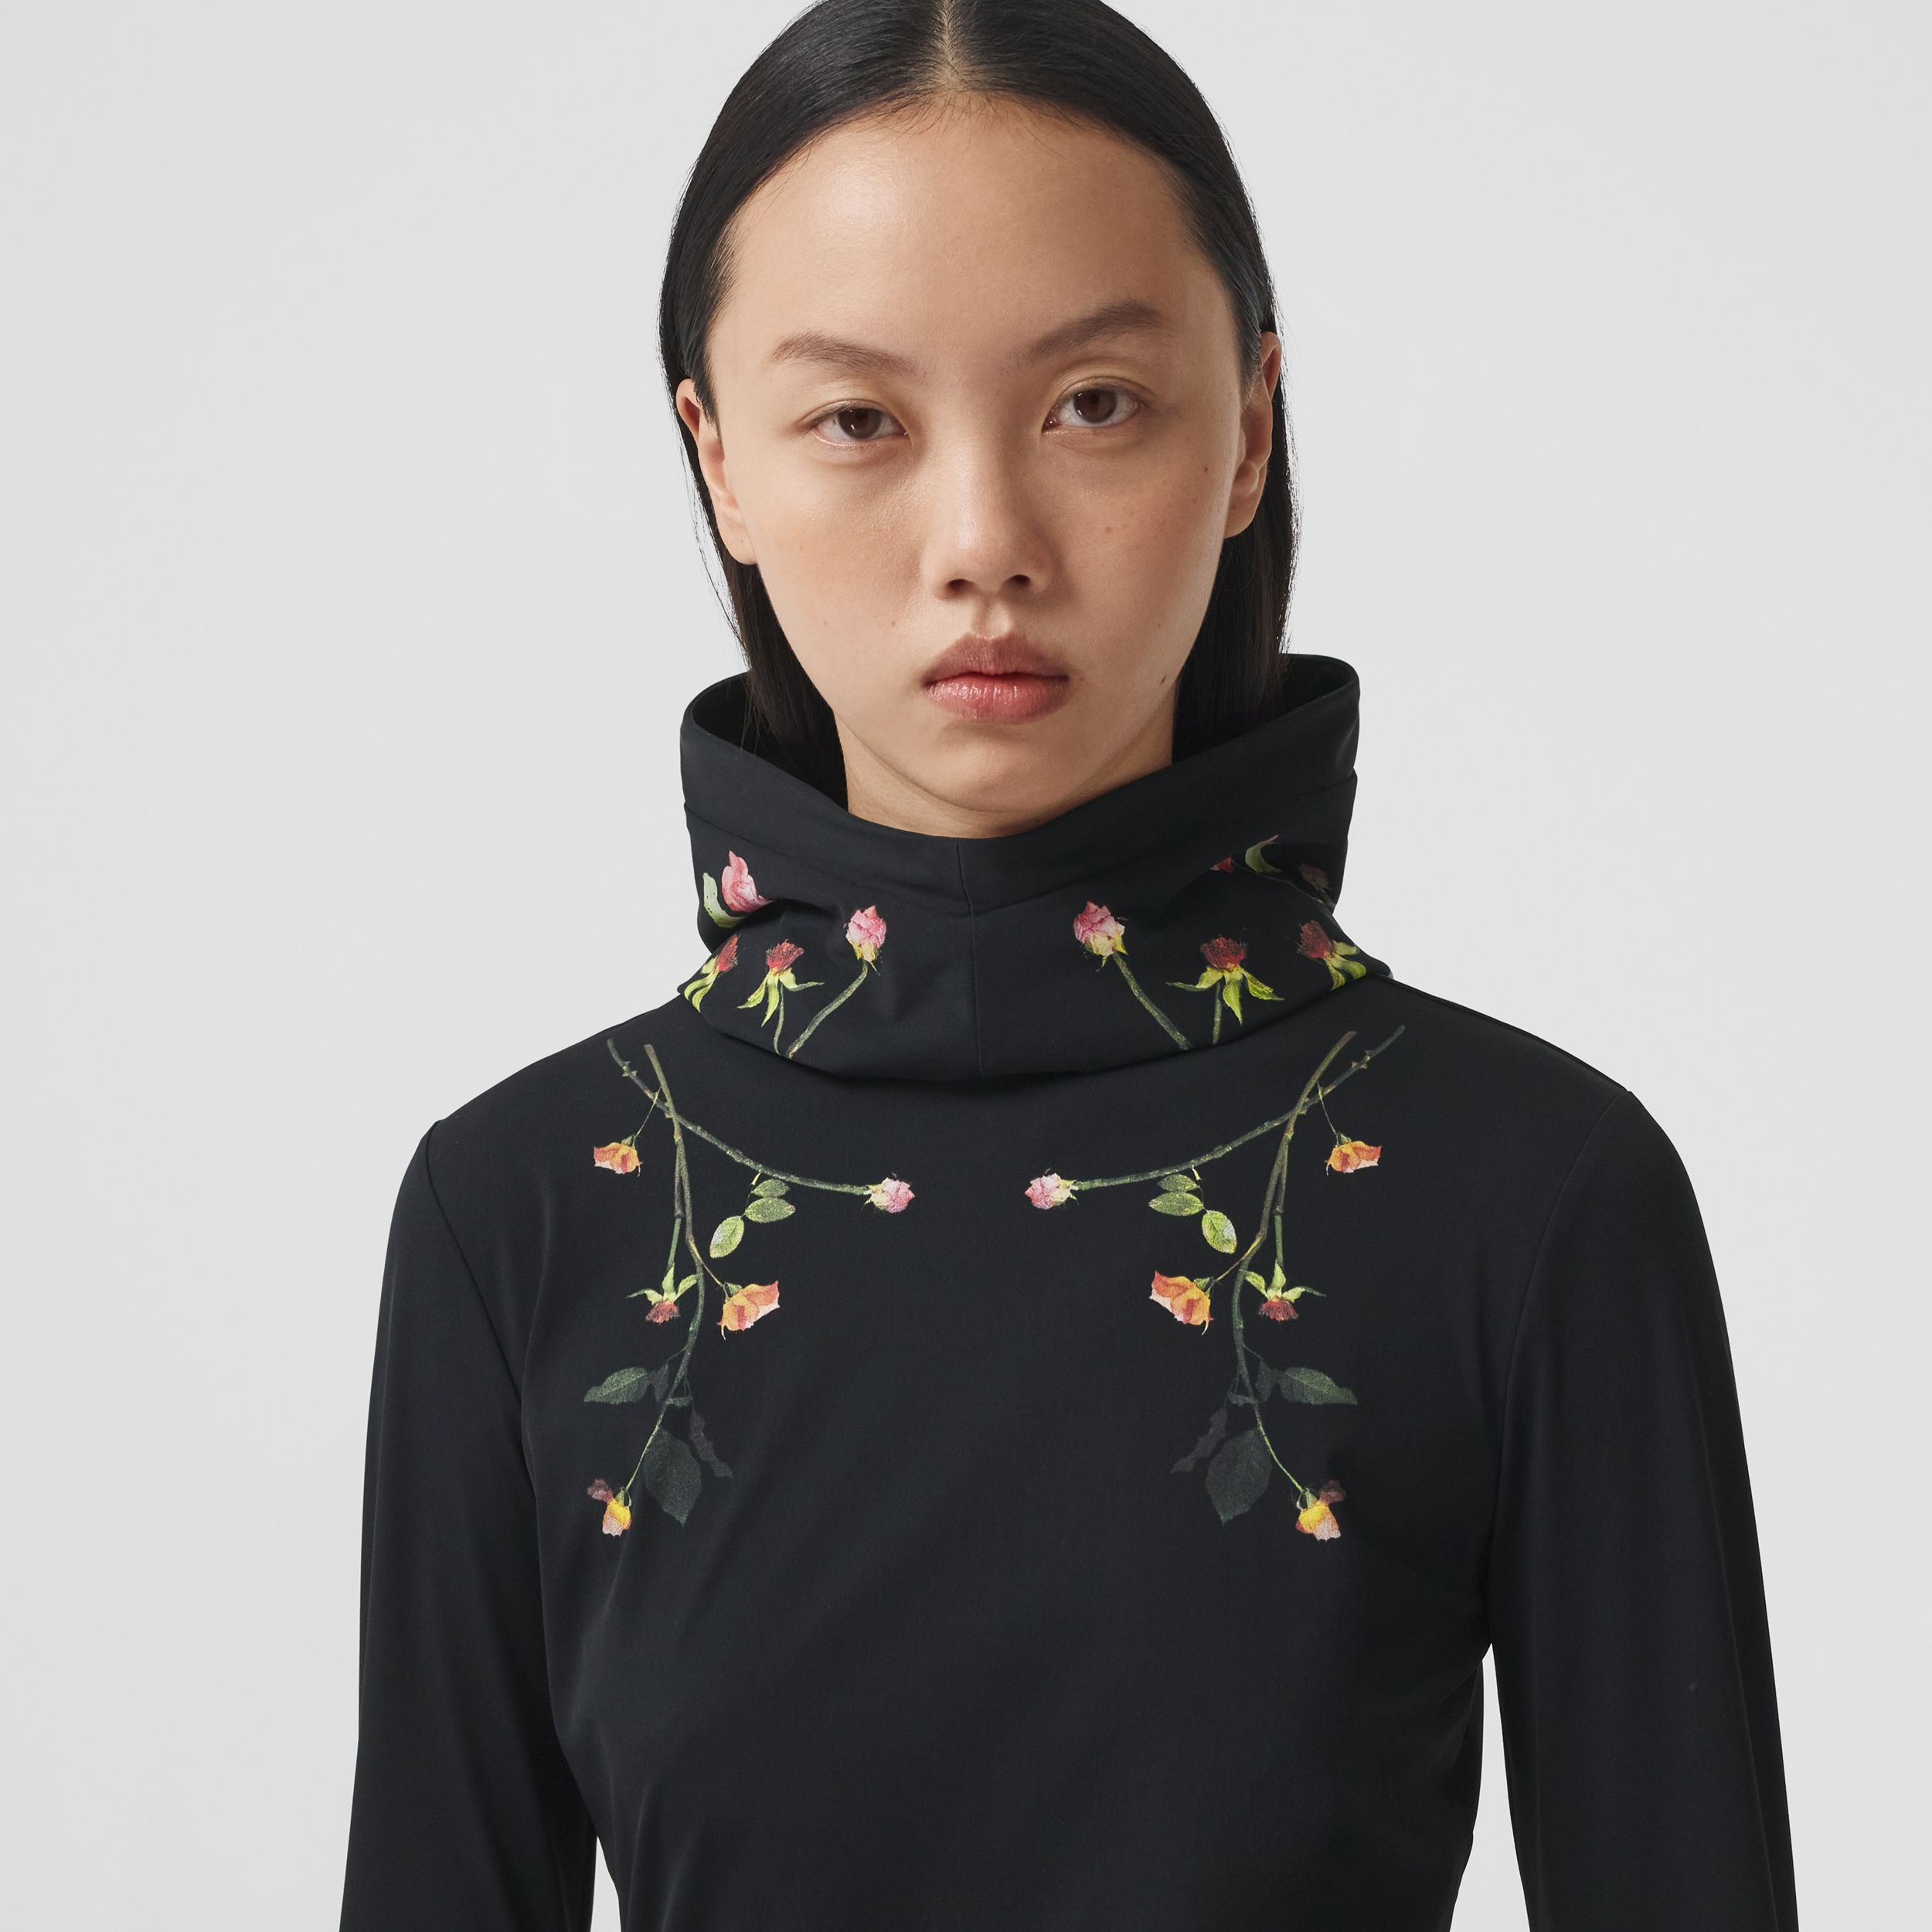 Rose Print Stretch Jersey Hooded Top in Black - Women | Burberry United Kingdom - 2